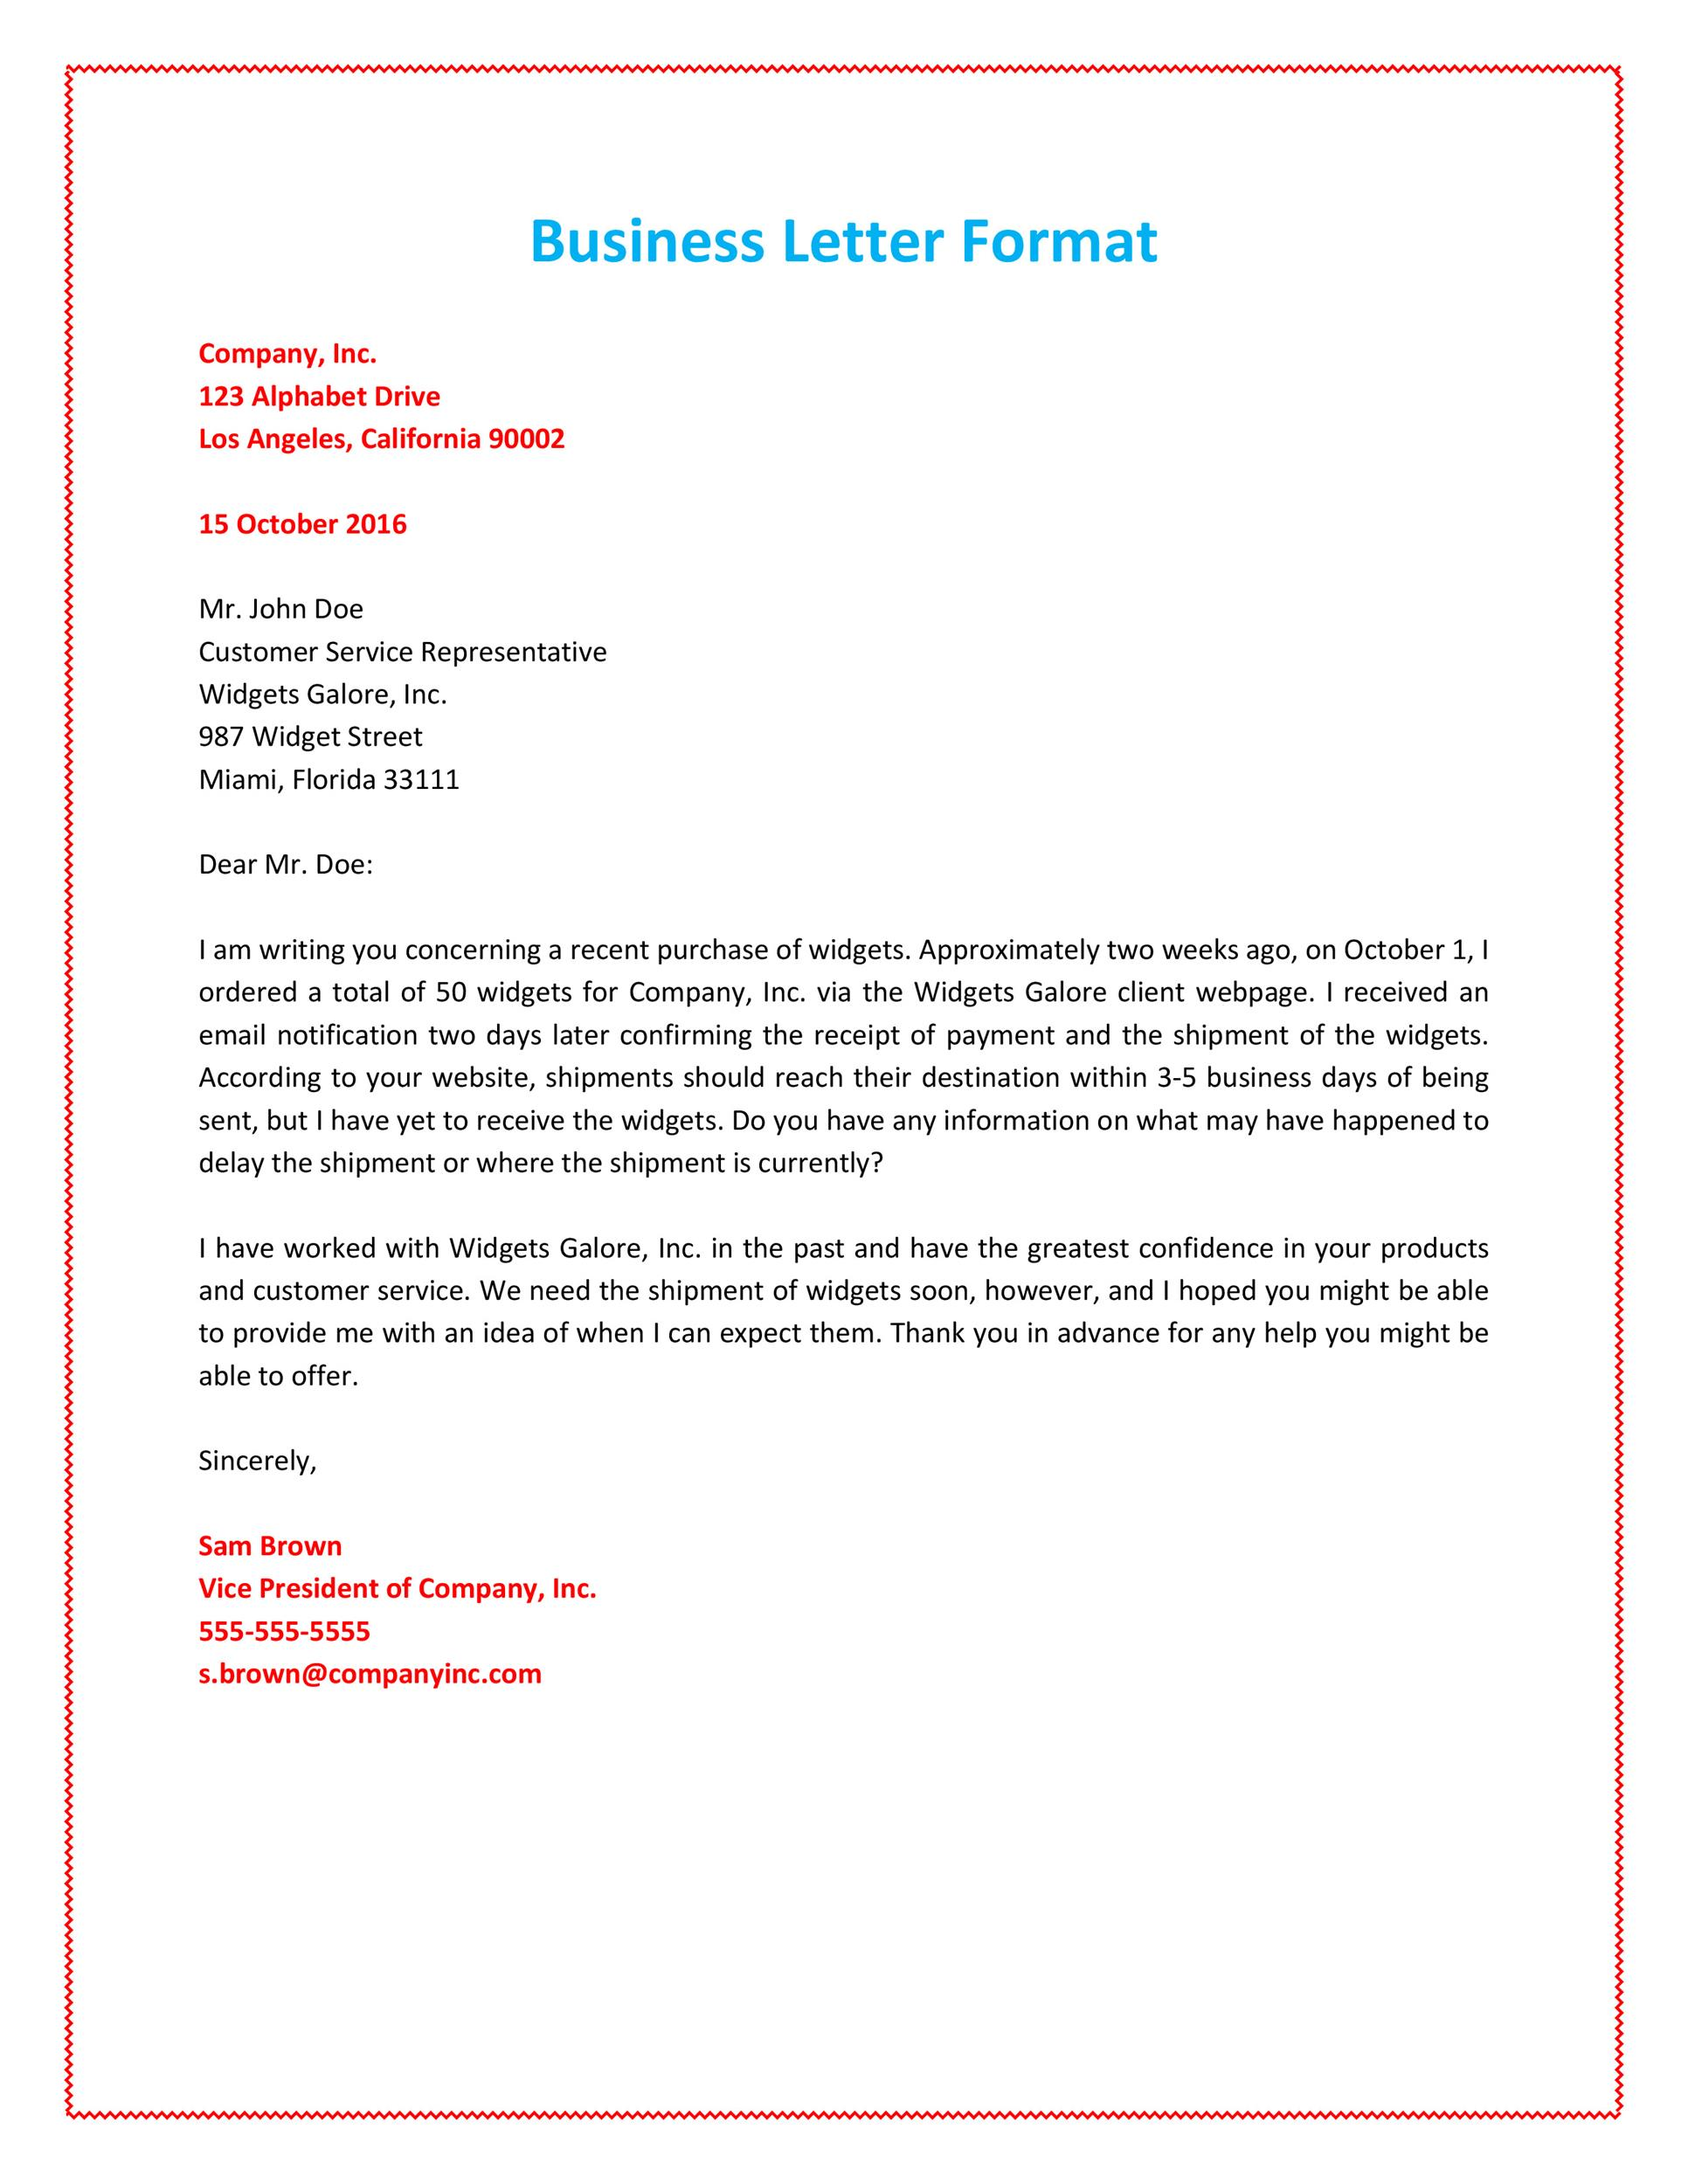 Bussiness letter romeondinez 35 formal business letter format templates examples template lab flashek Gallery